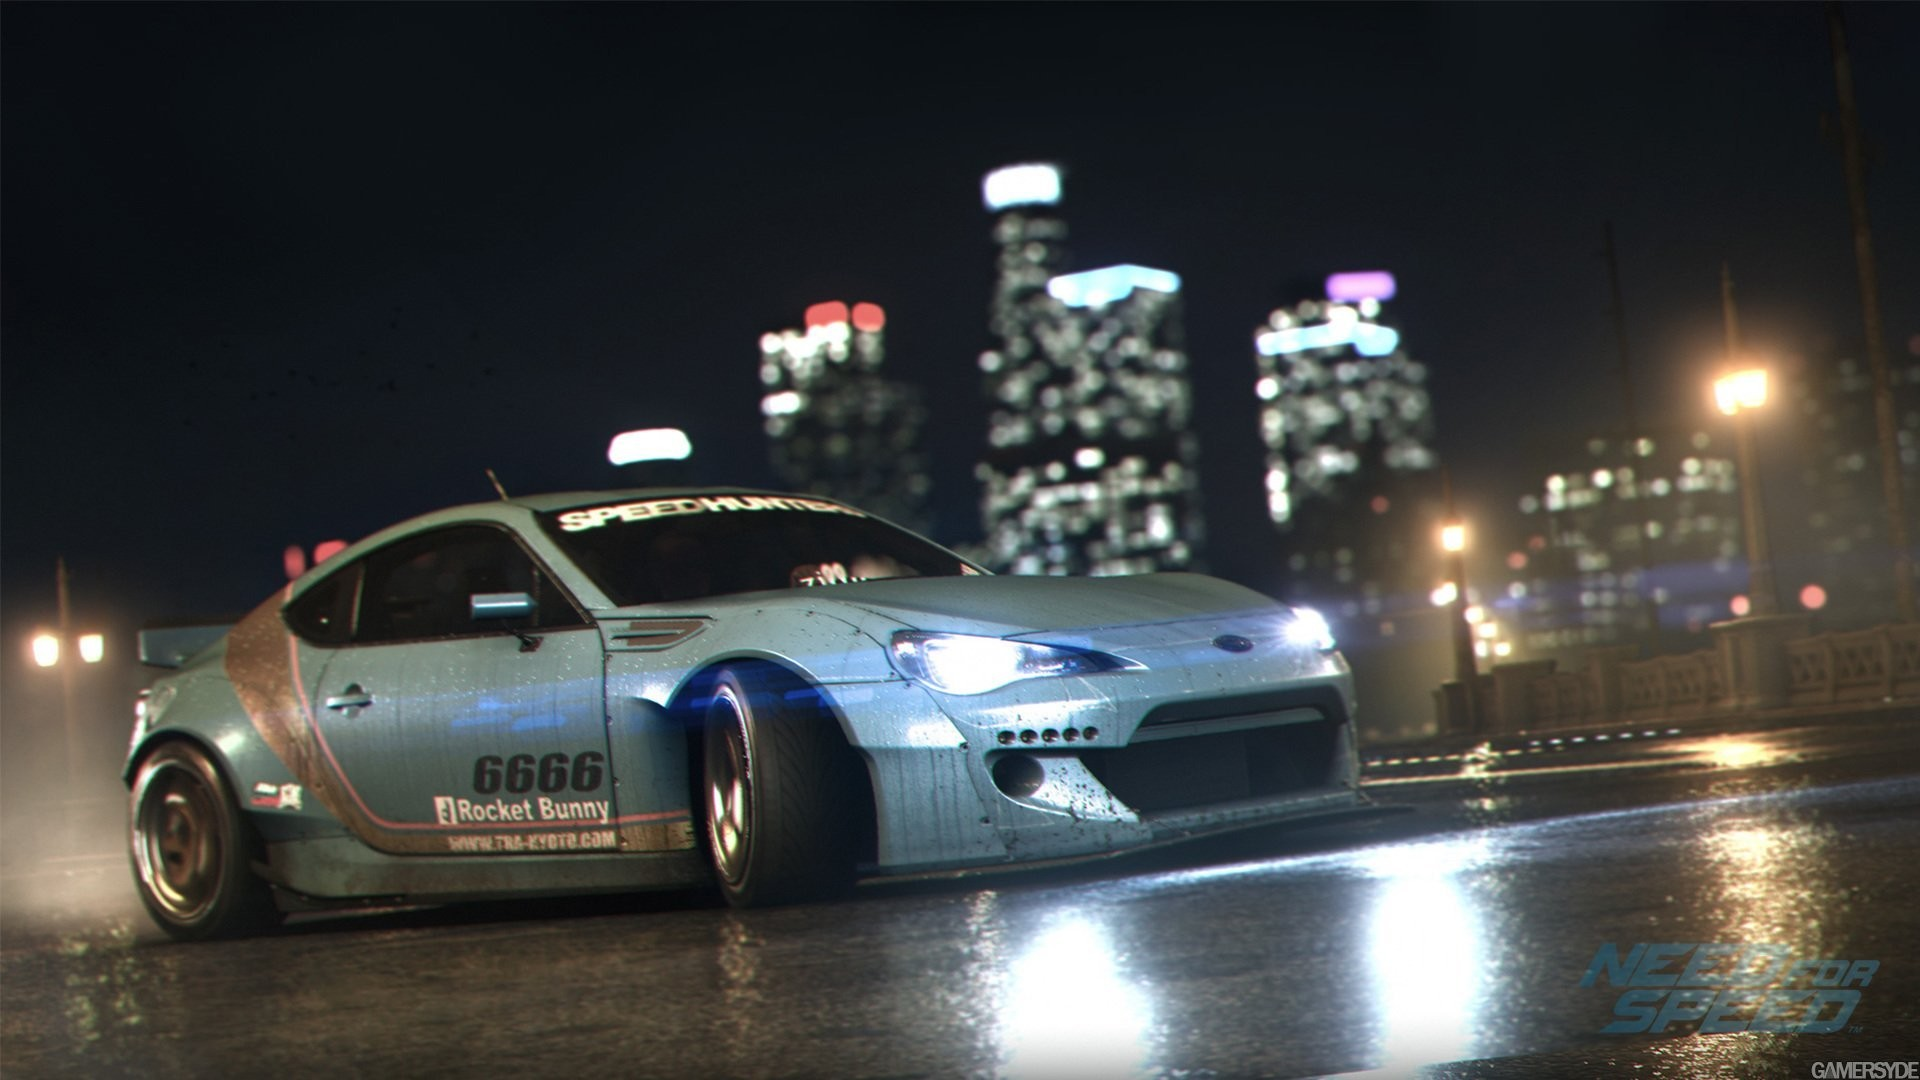 1920x1080 subaru brz rocket bunny need for speed 2015 nigth race game